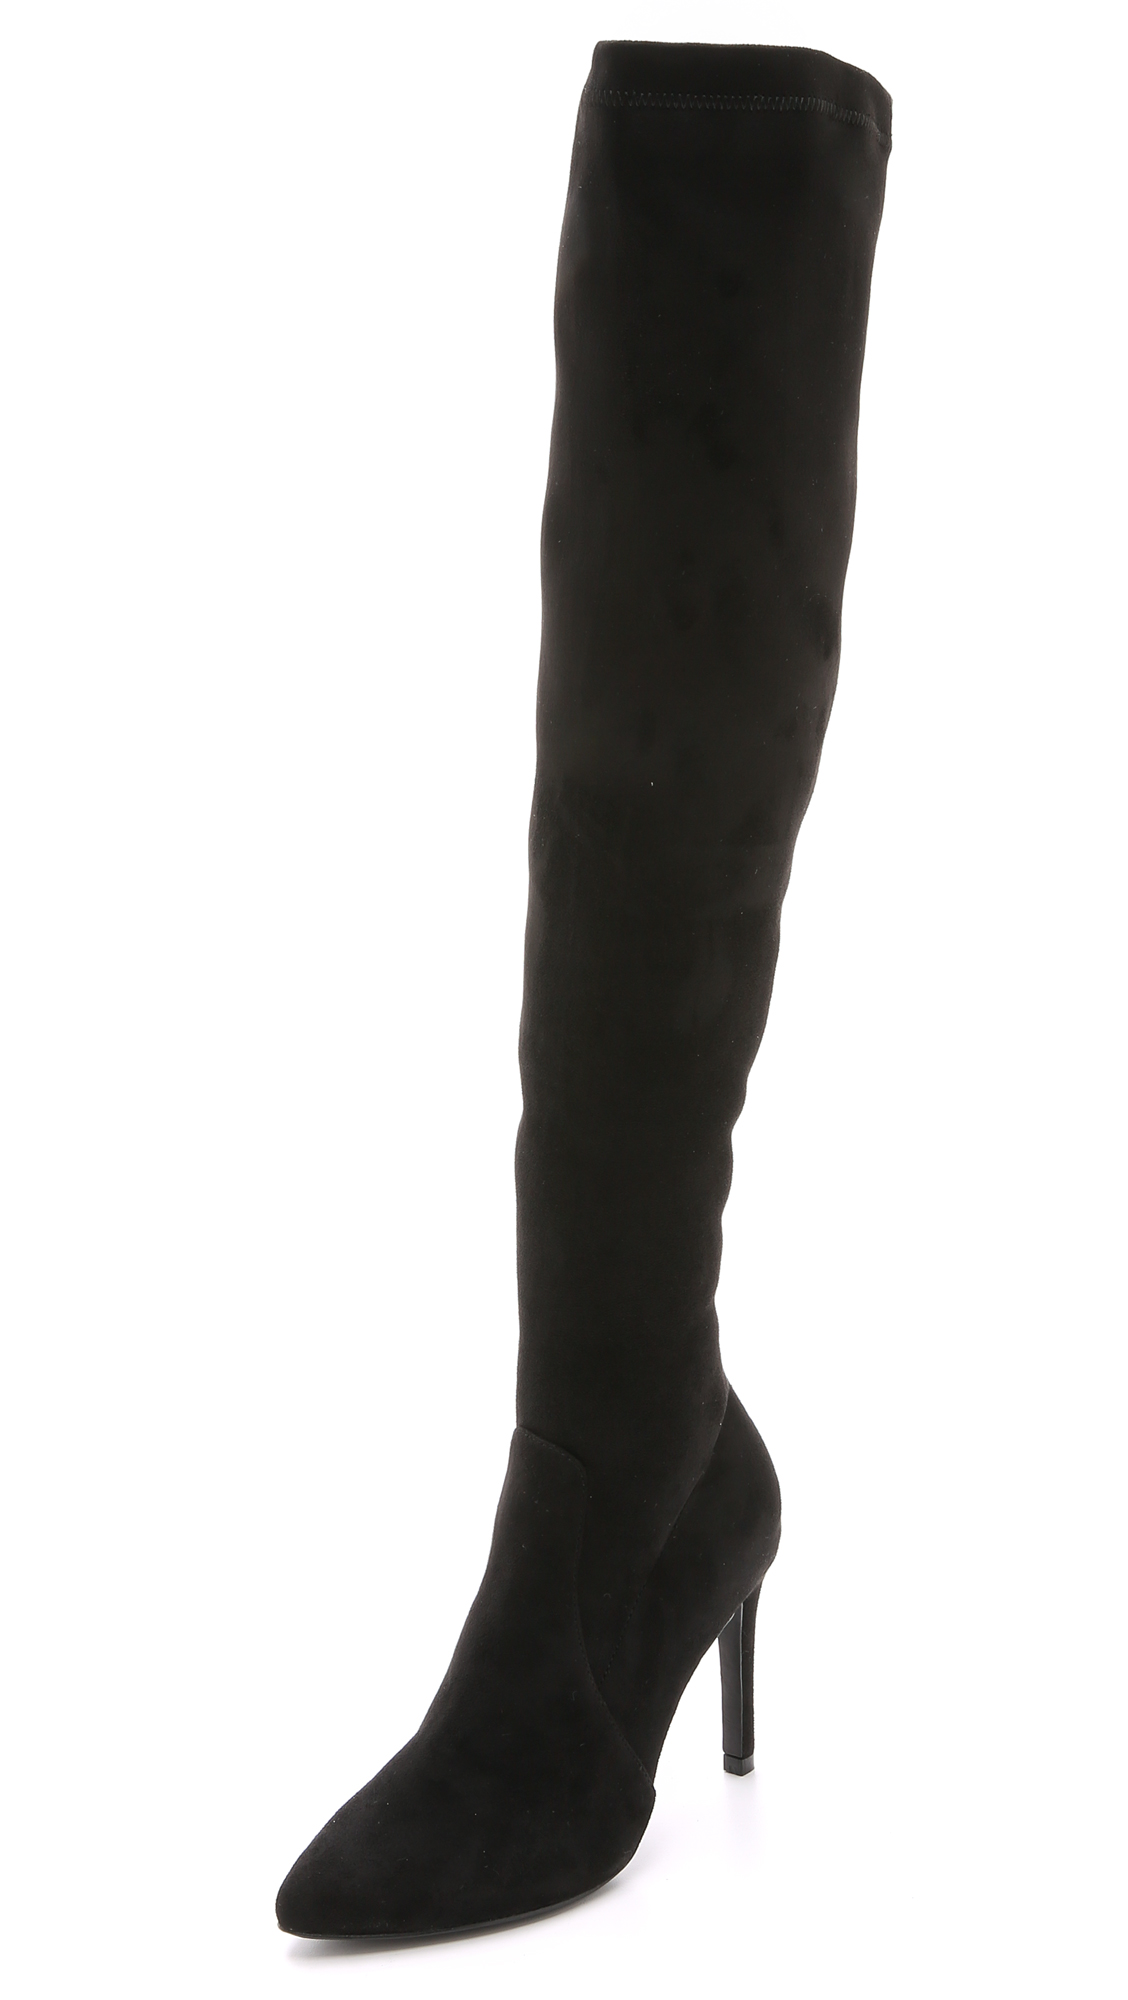 b31bcf9fc49 Joie Jemina B Faux-Suede Over-The-Knee Boot